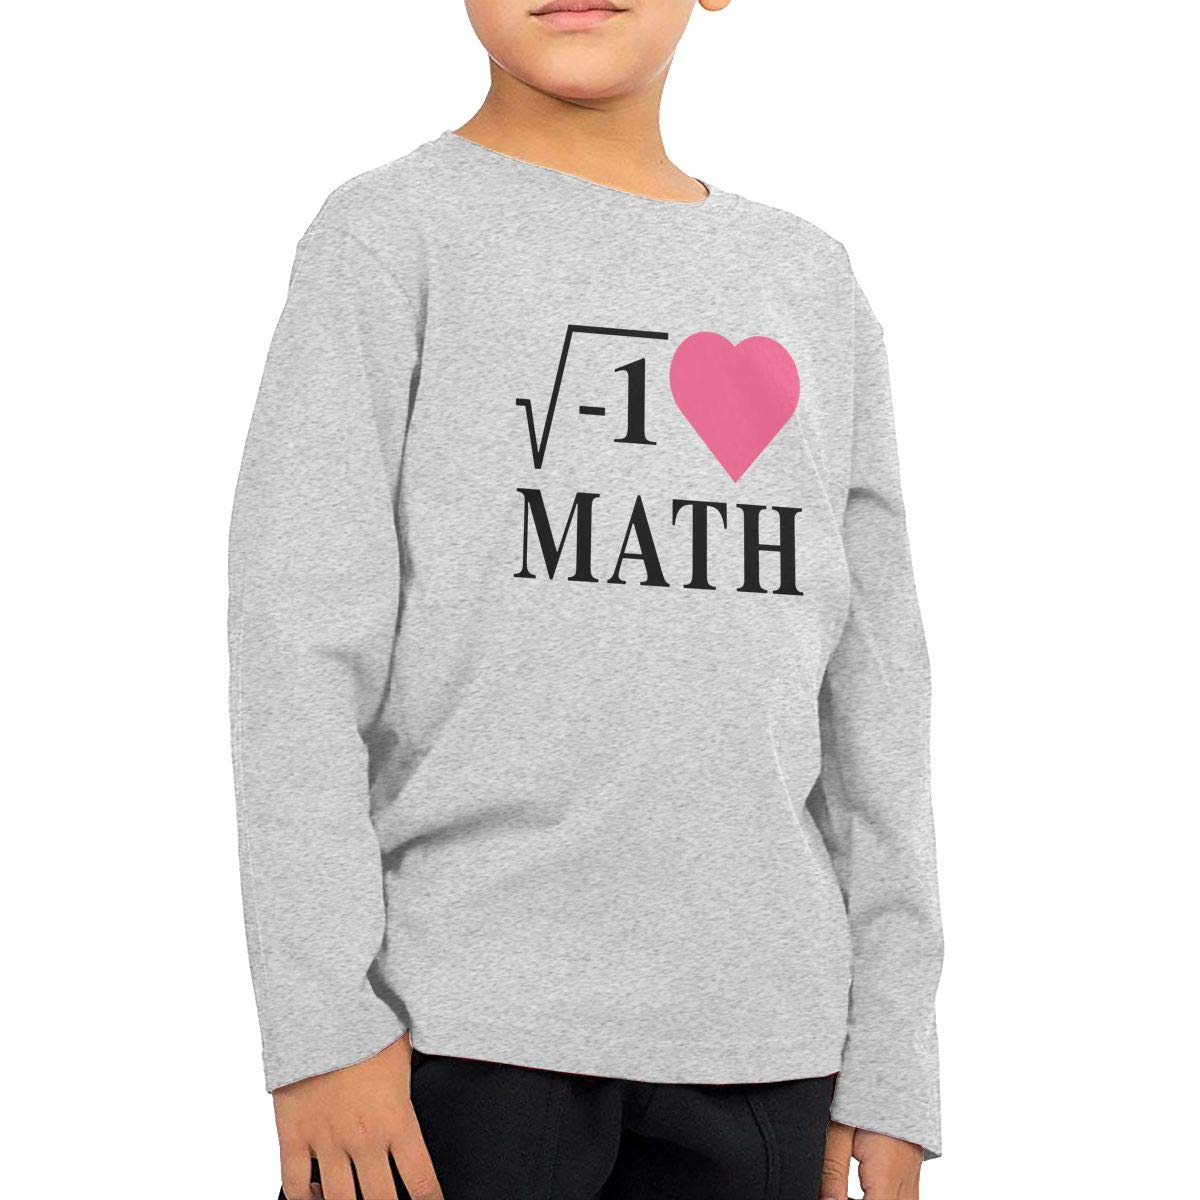 I Love Math Childrens Gray Cotton Long Sleeve Round Neck T Shirt for Boy Or Girl